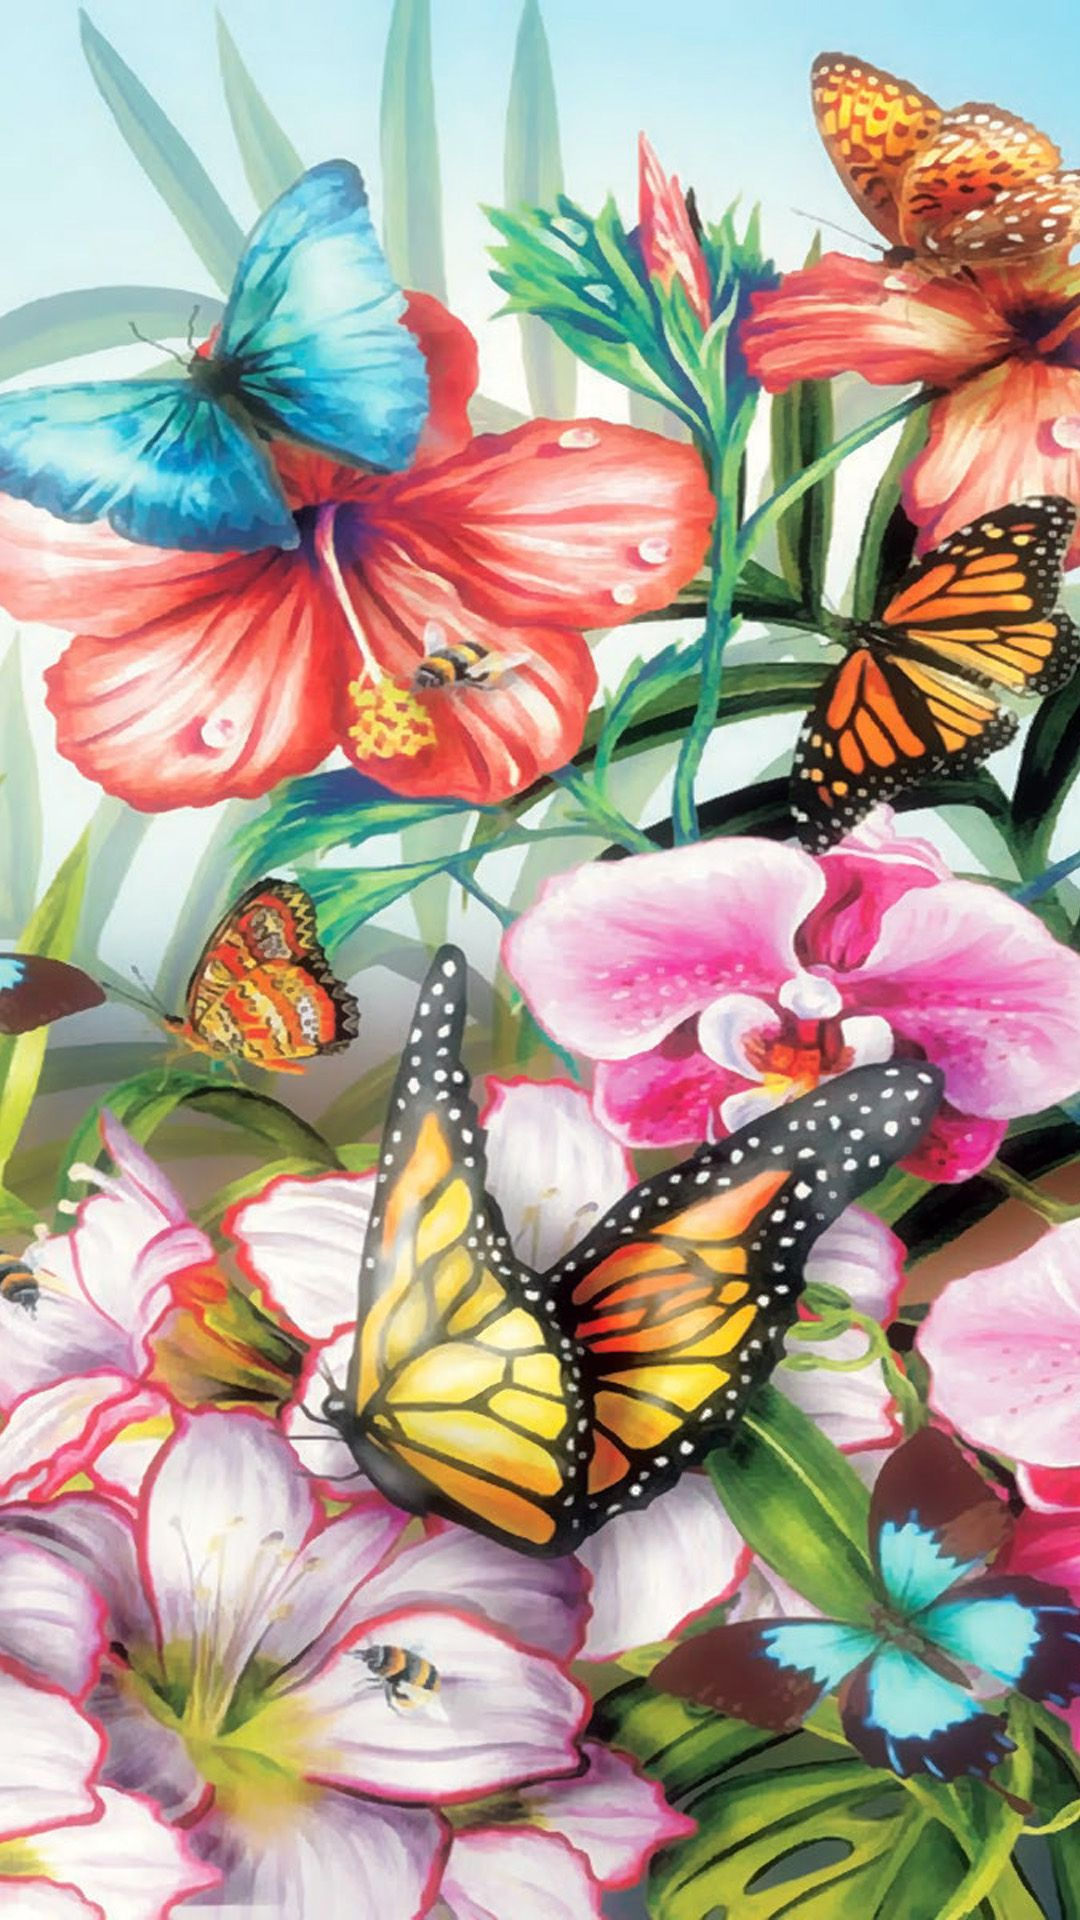 Butterfly Wallpapers - Top Free Butterfly Backgrounds ...